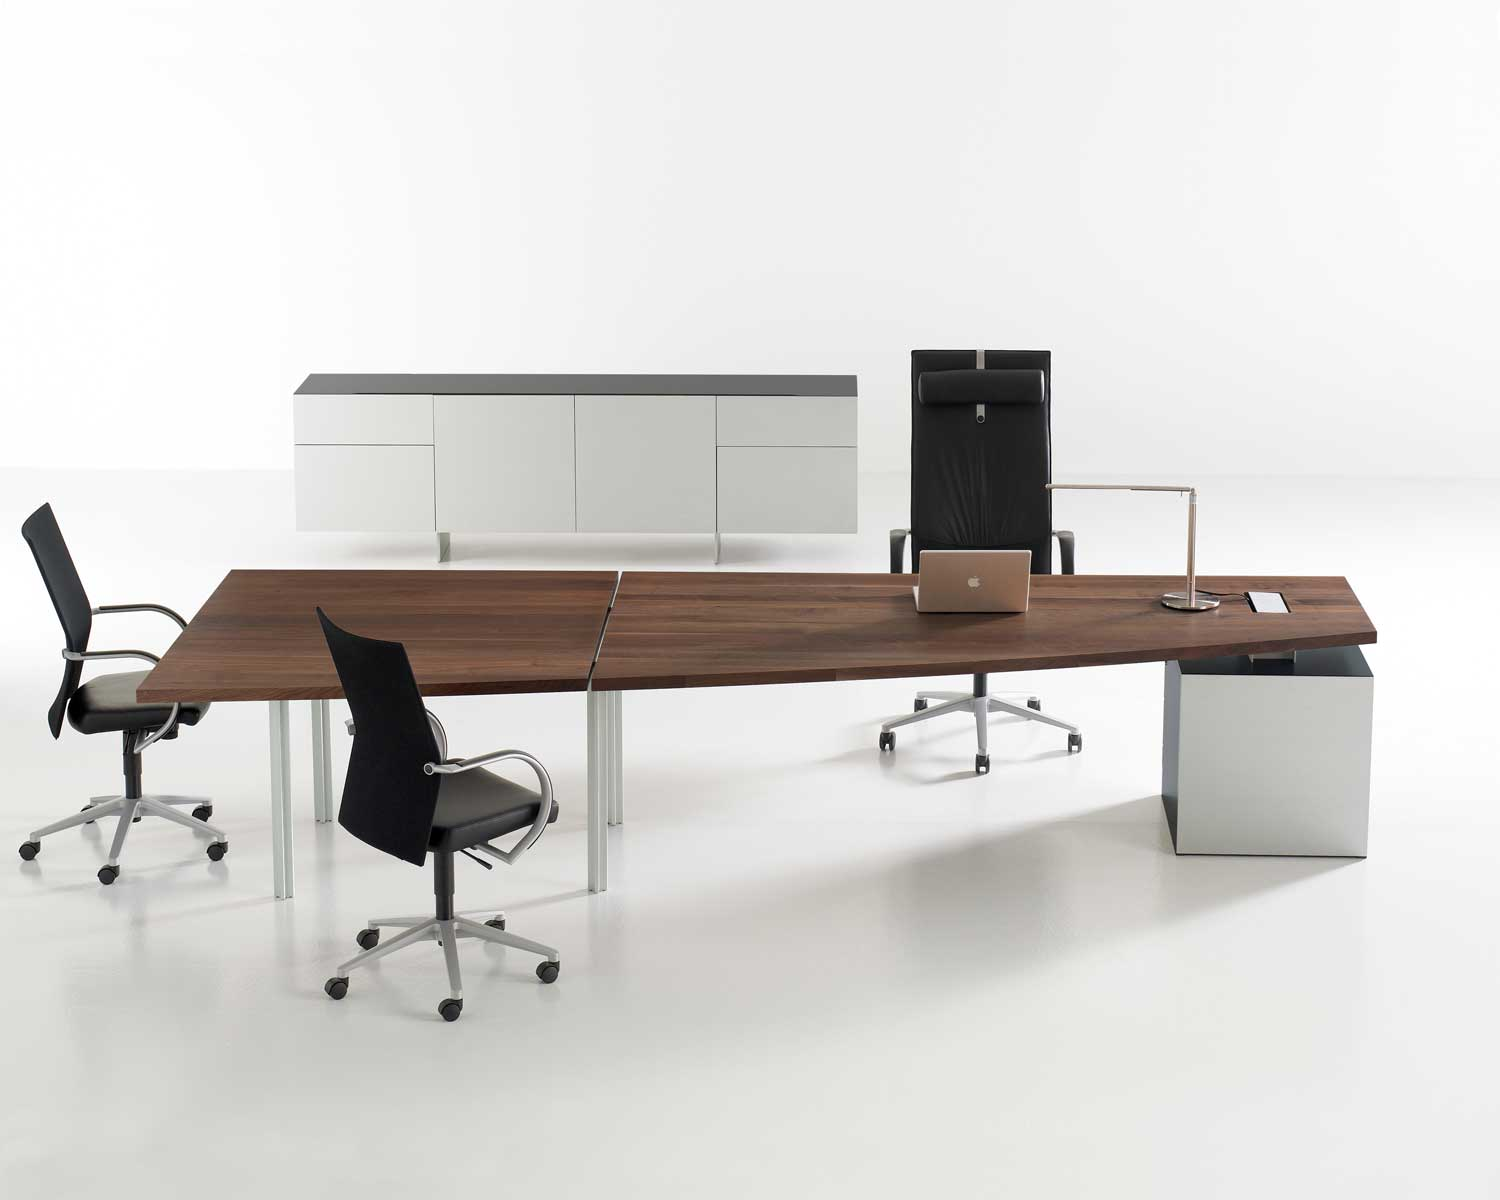 Adjustable Height Desks Aren T Just For Startup Geeks